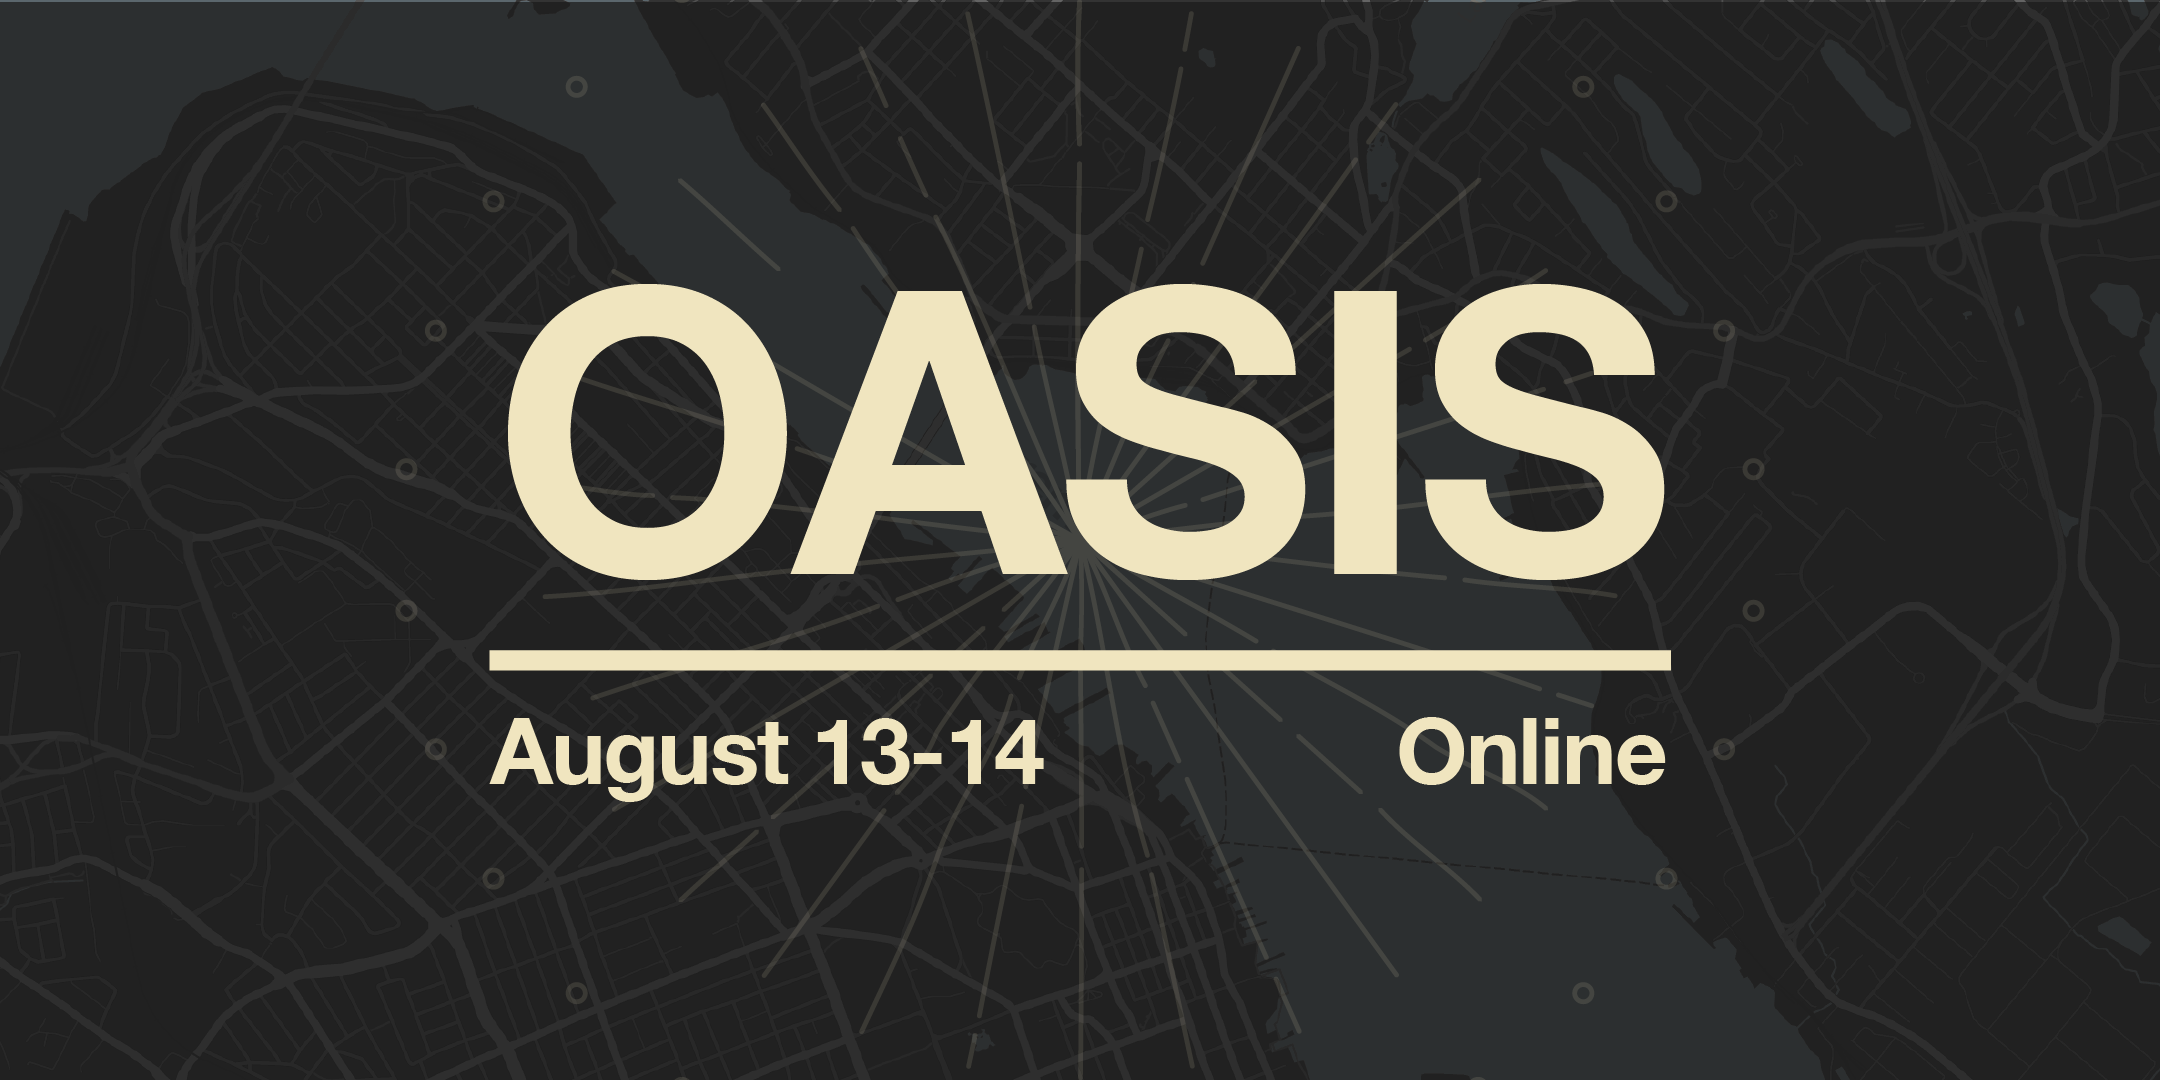 Oasis 2021: Click this image to register